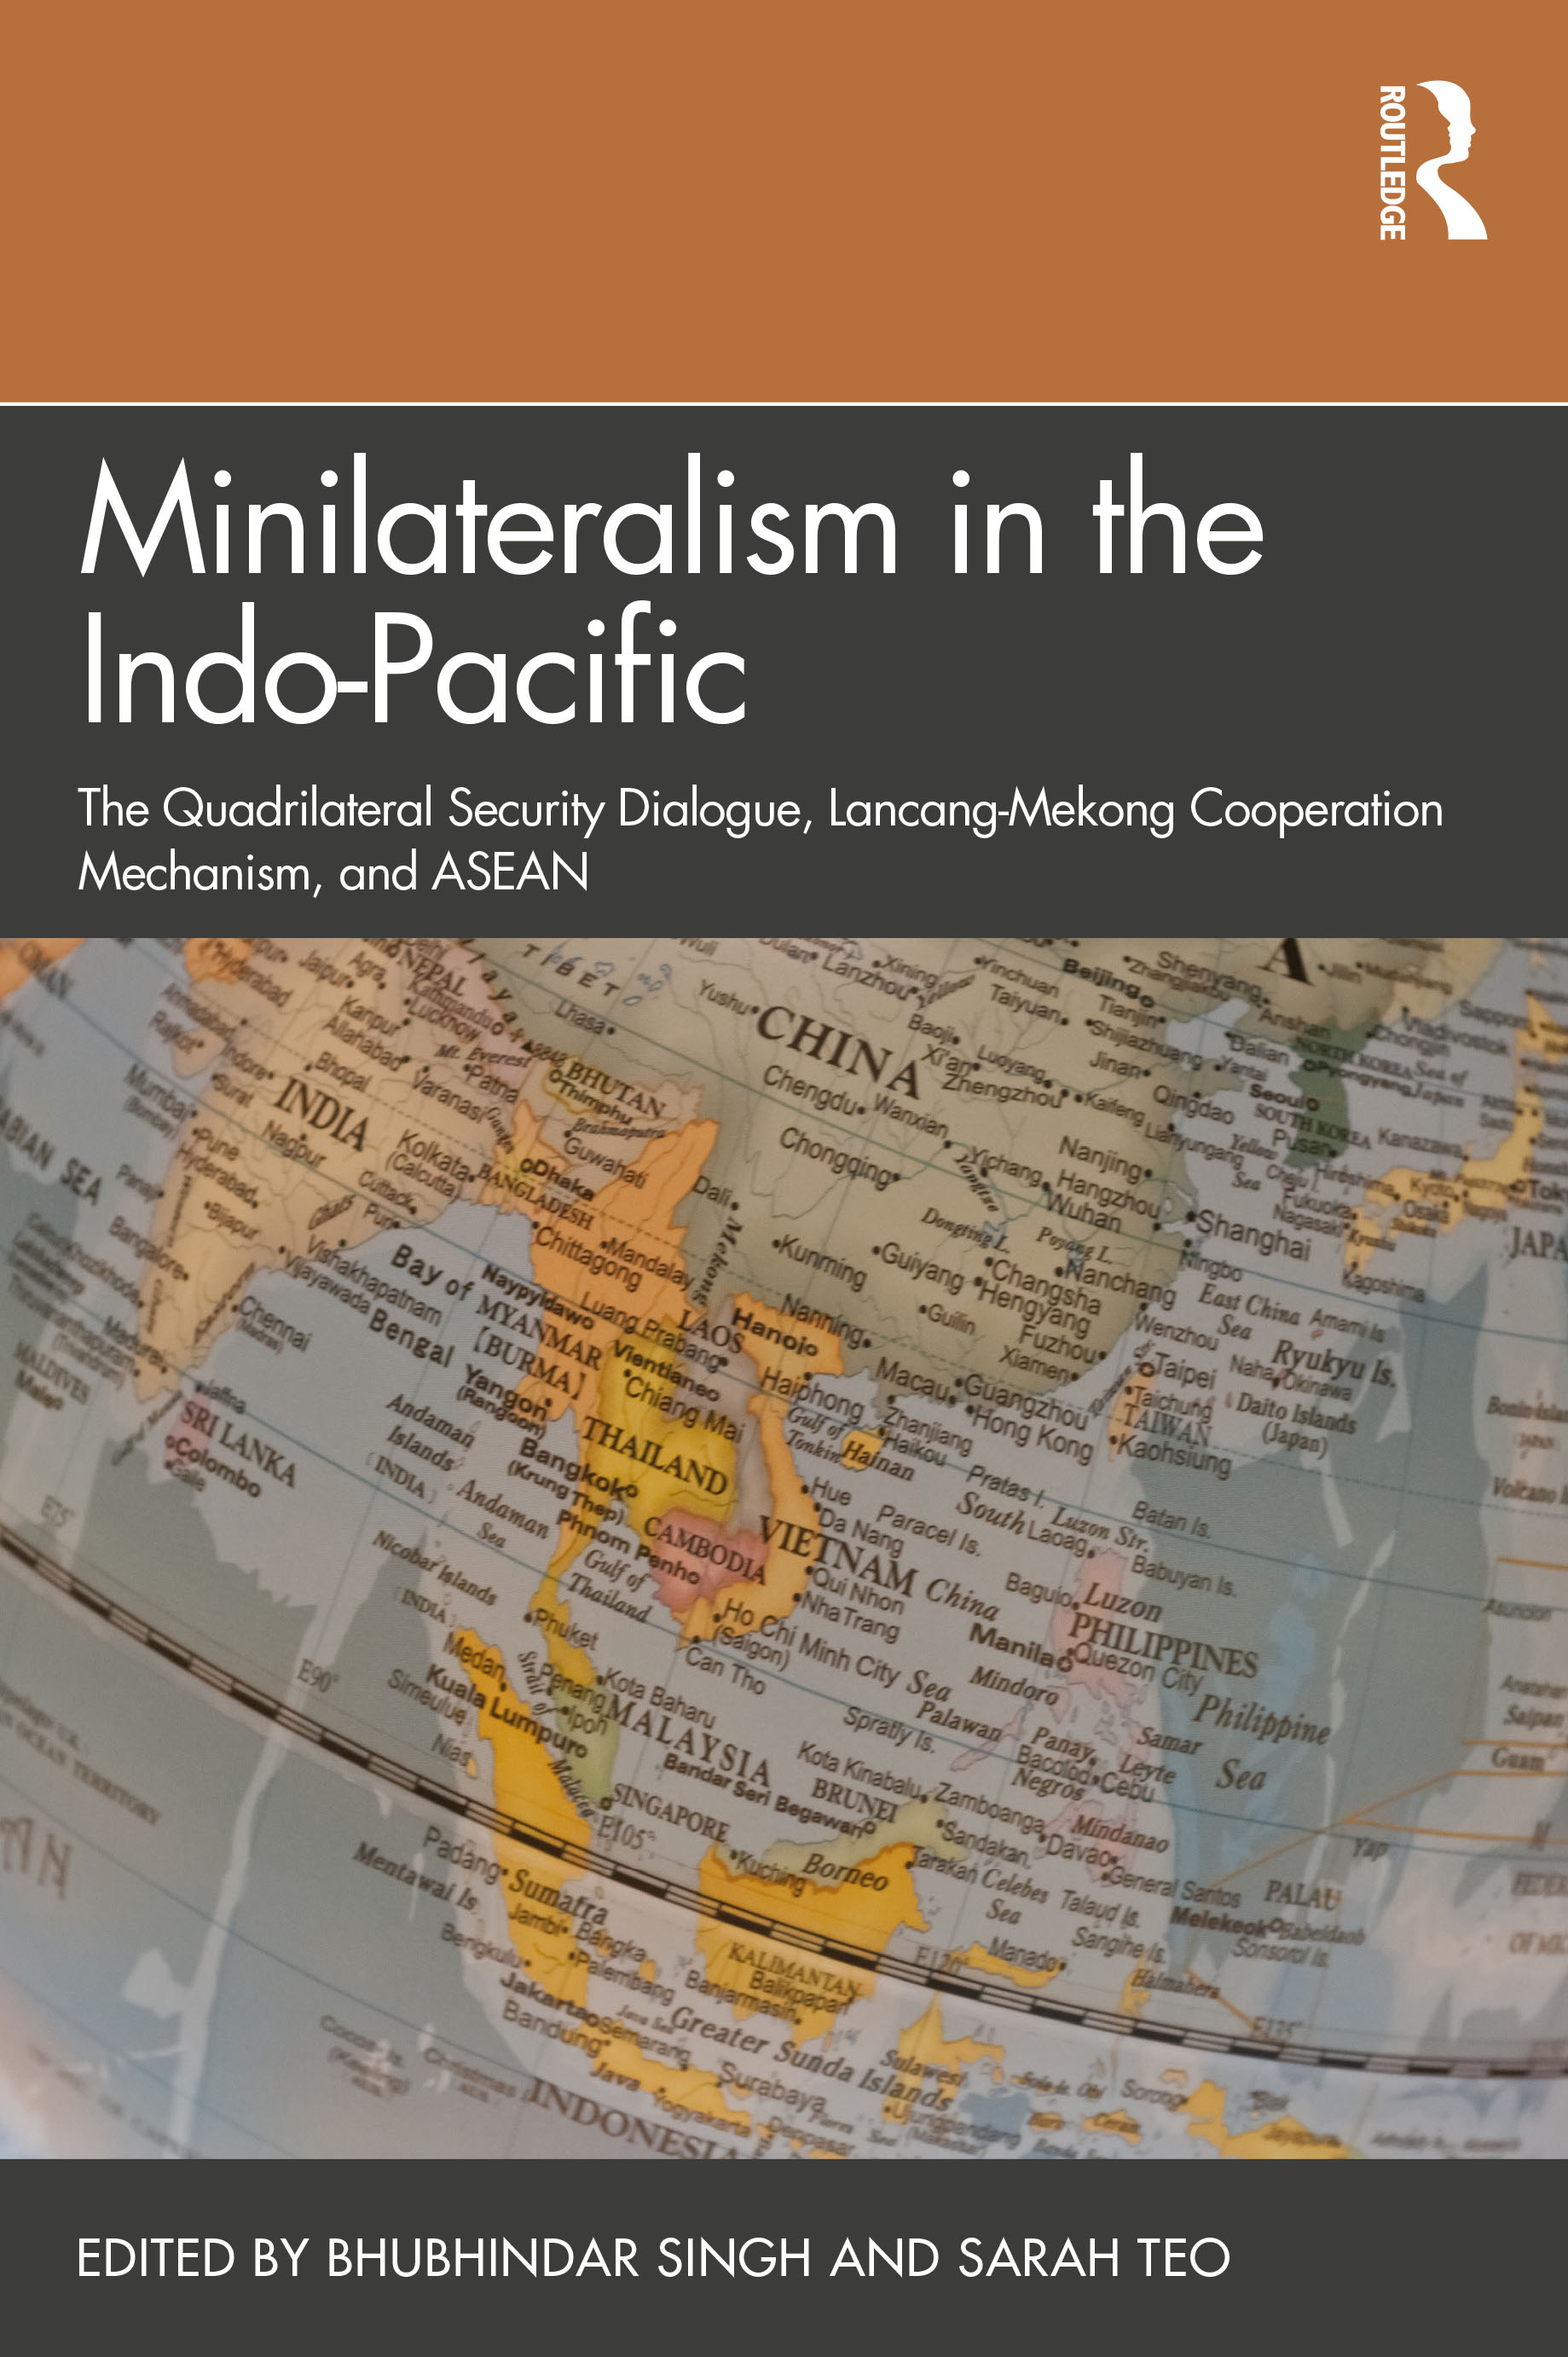 Minilateralism in the Indo-Pacific